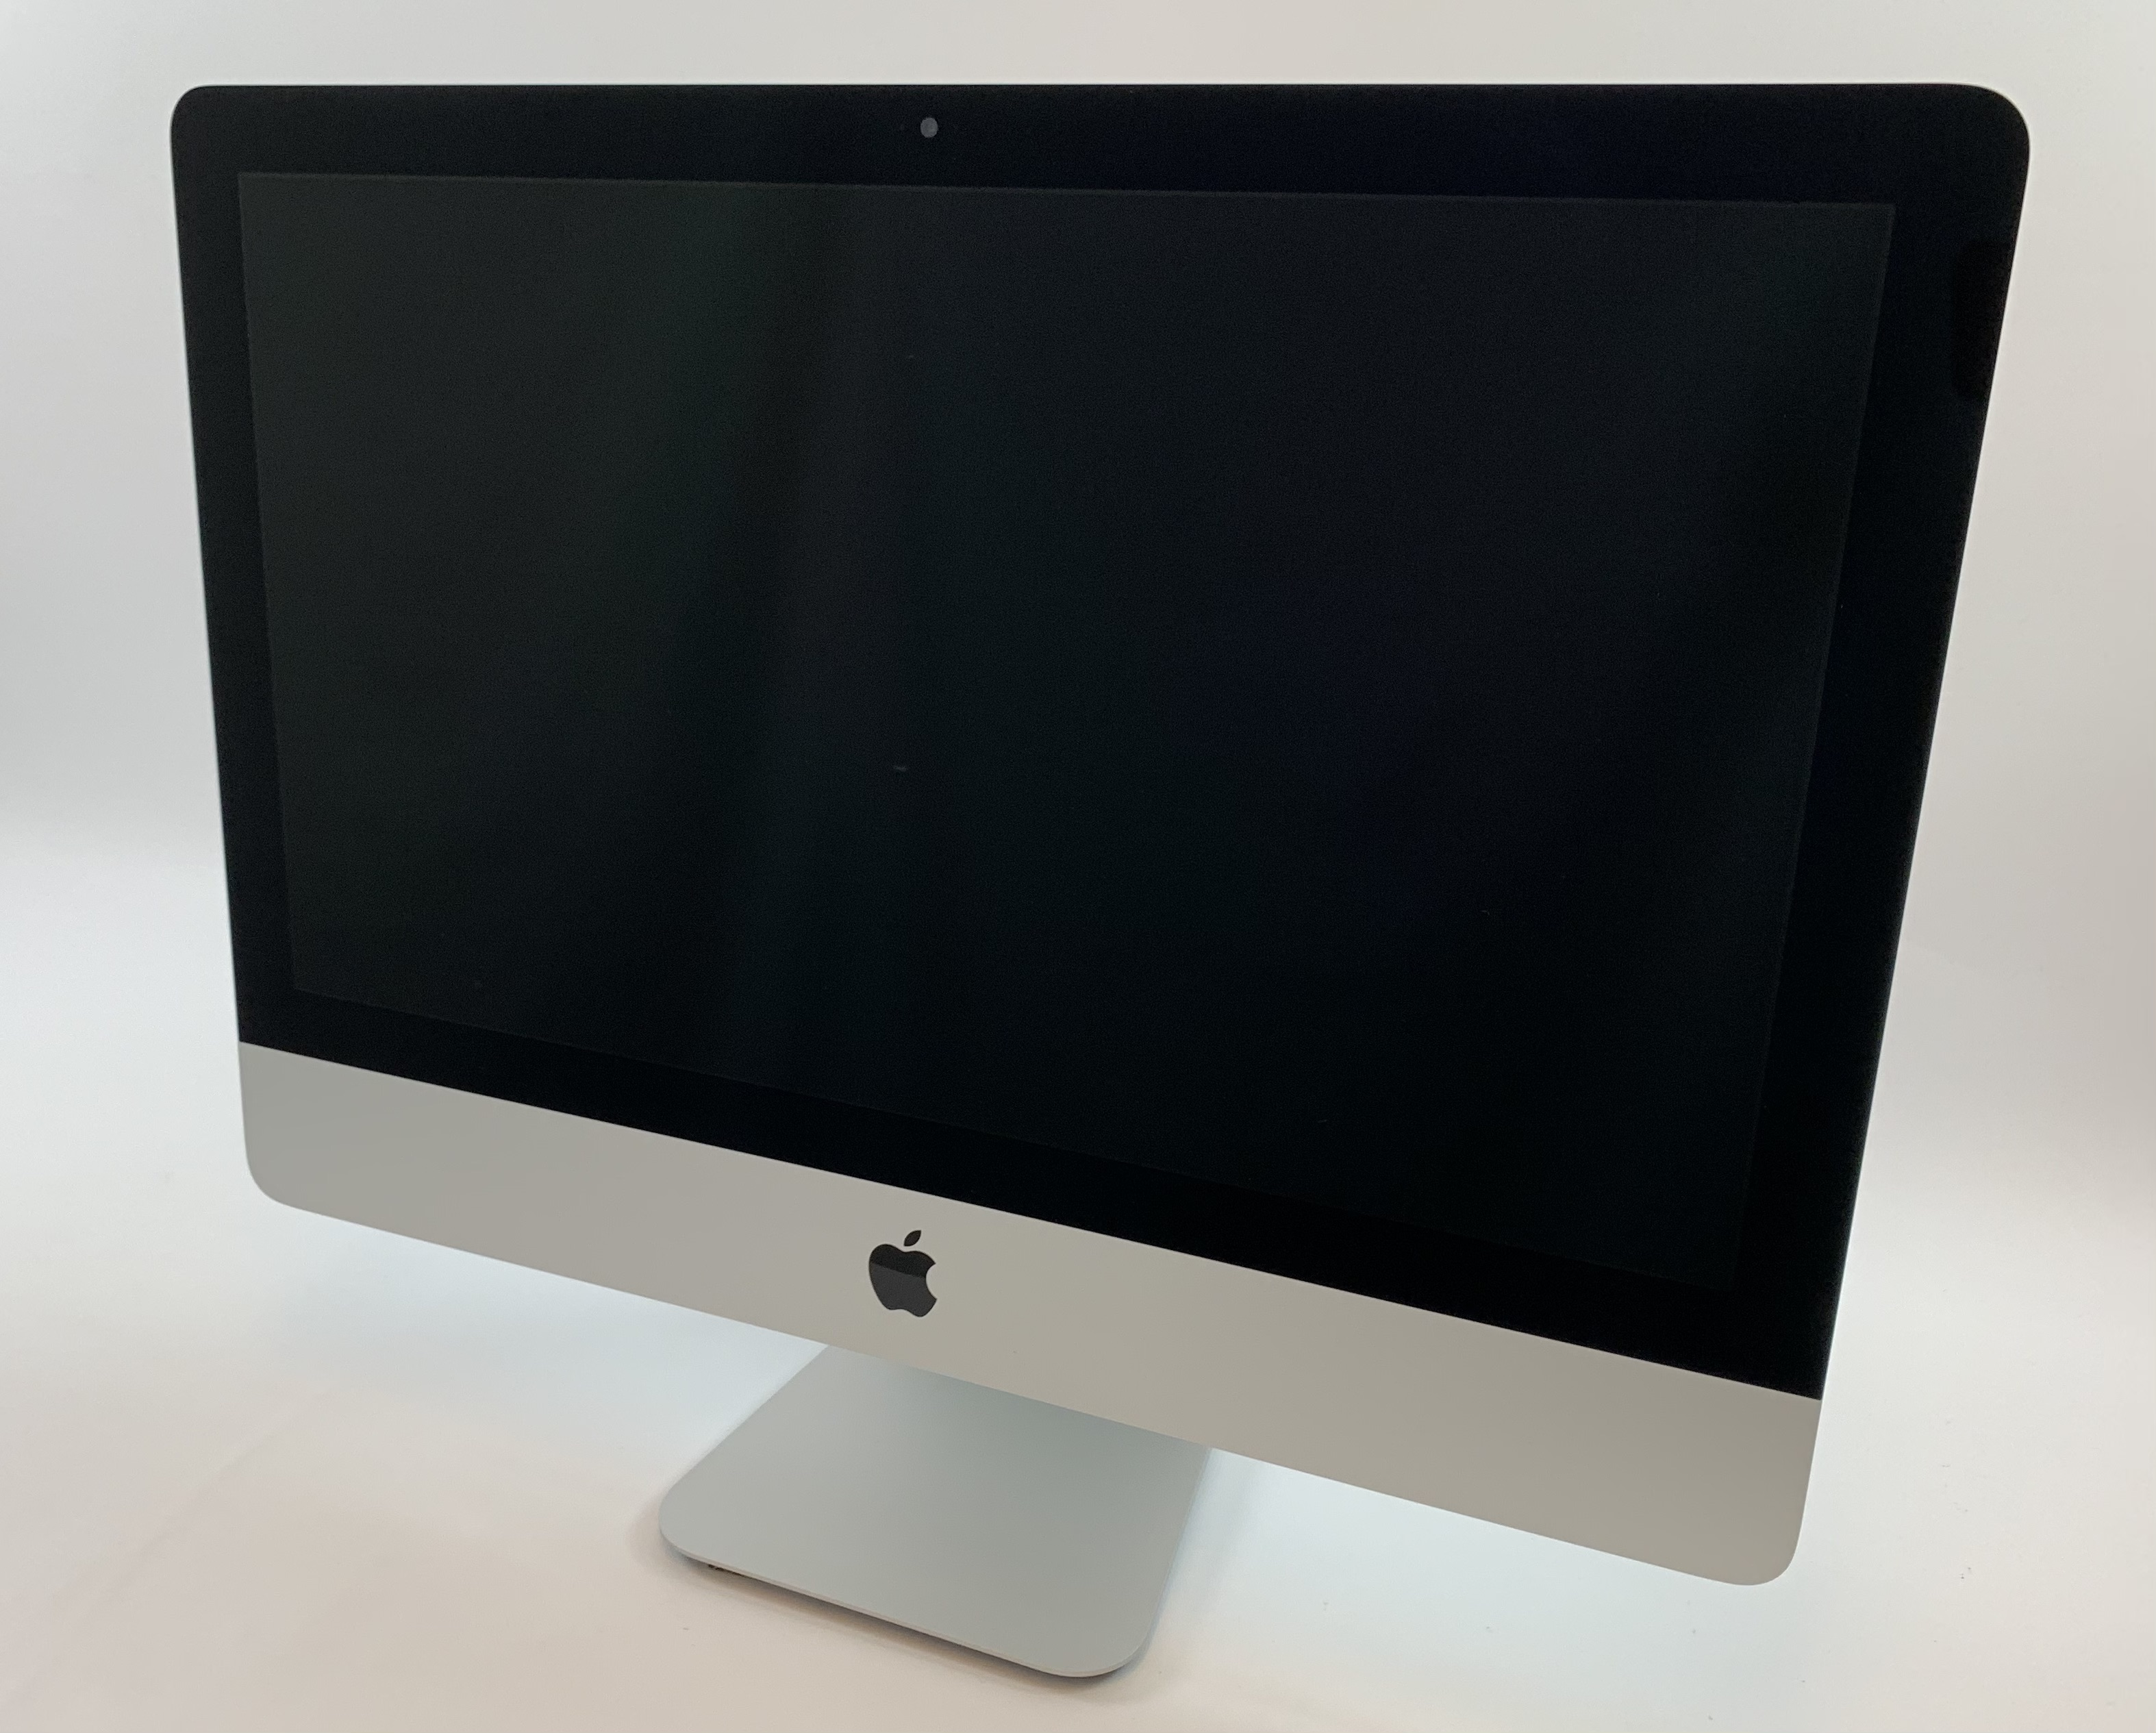 "iMac 21.5"" Retina 4K Early 2019 (Intel 6-Core i5 3.0 GHz 32 GB RAM 1 TB SSD), Intel 6-Core i5 3.0 GHz, 32 GB RAM, 1 TB SSD (Third-party), Kuva 1"